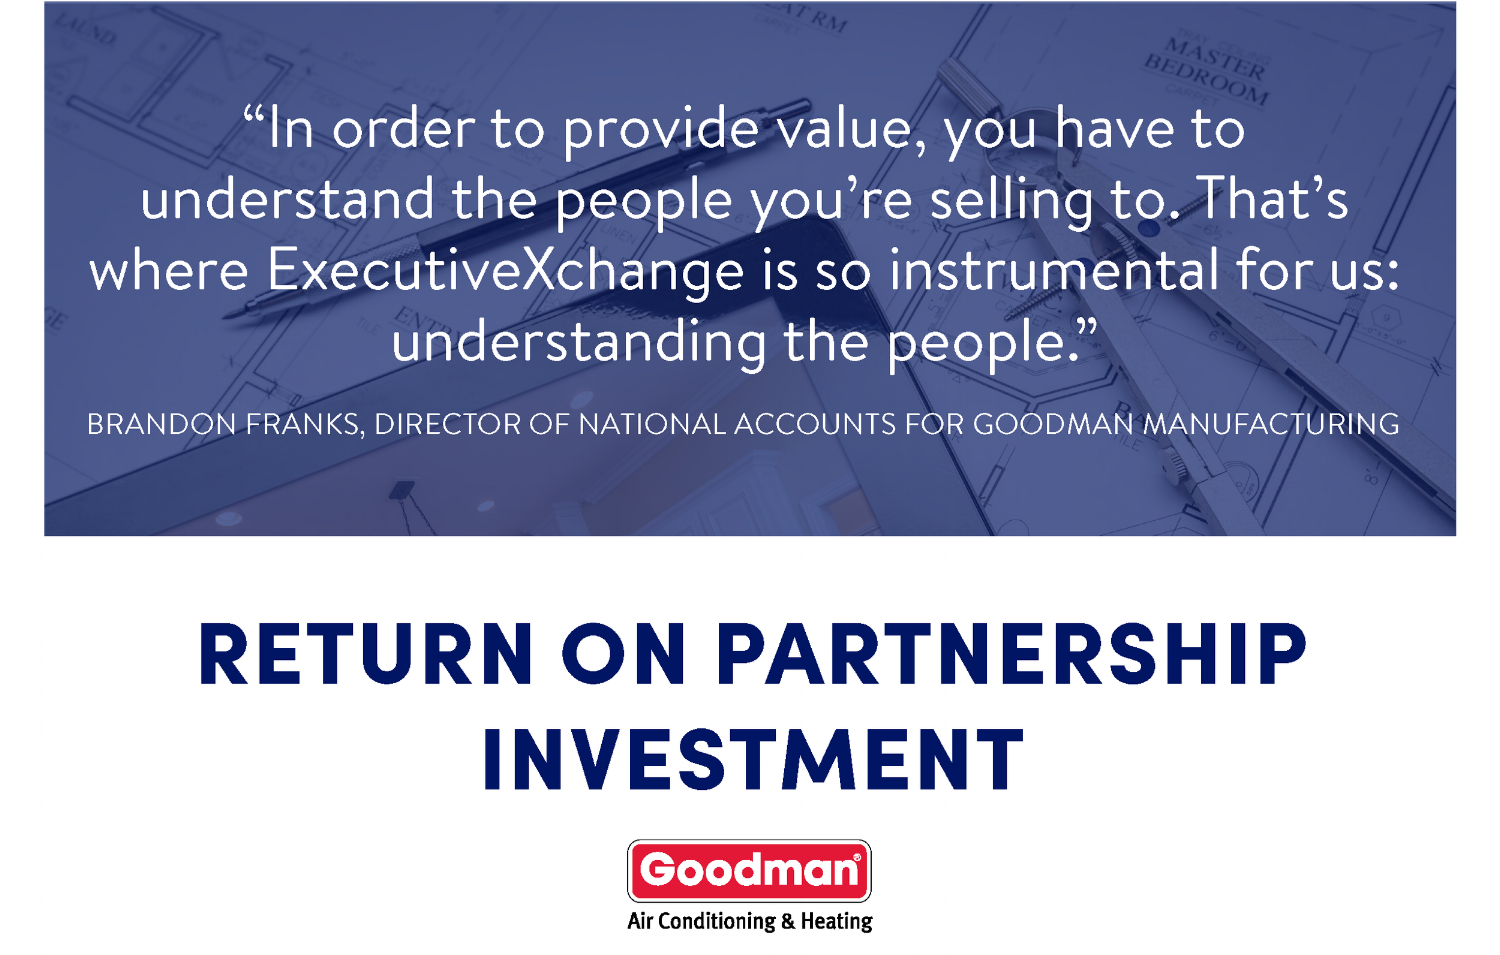 ExecutiveXchange _ Goodman Manufacturing J_Page_1.png